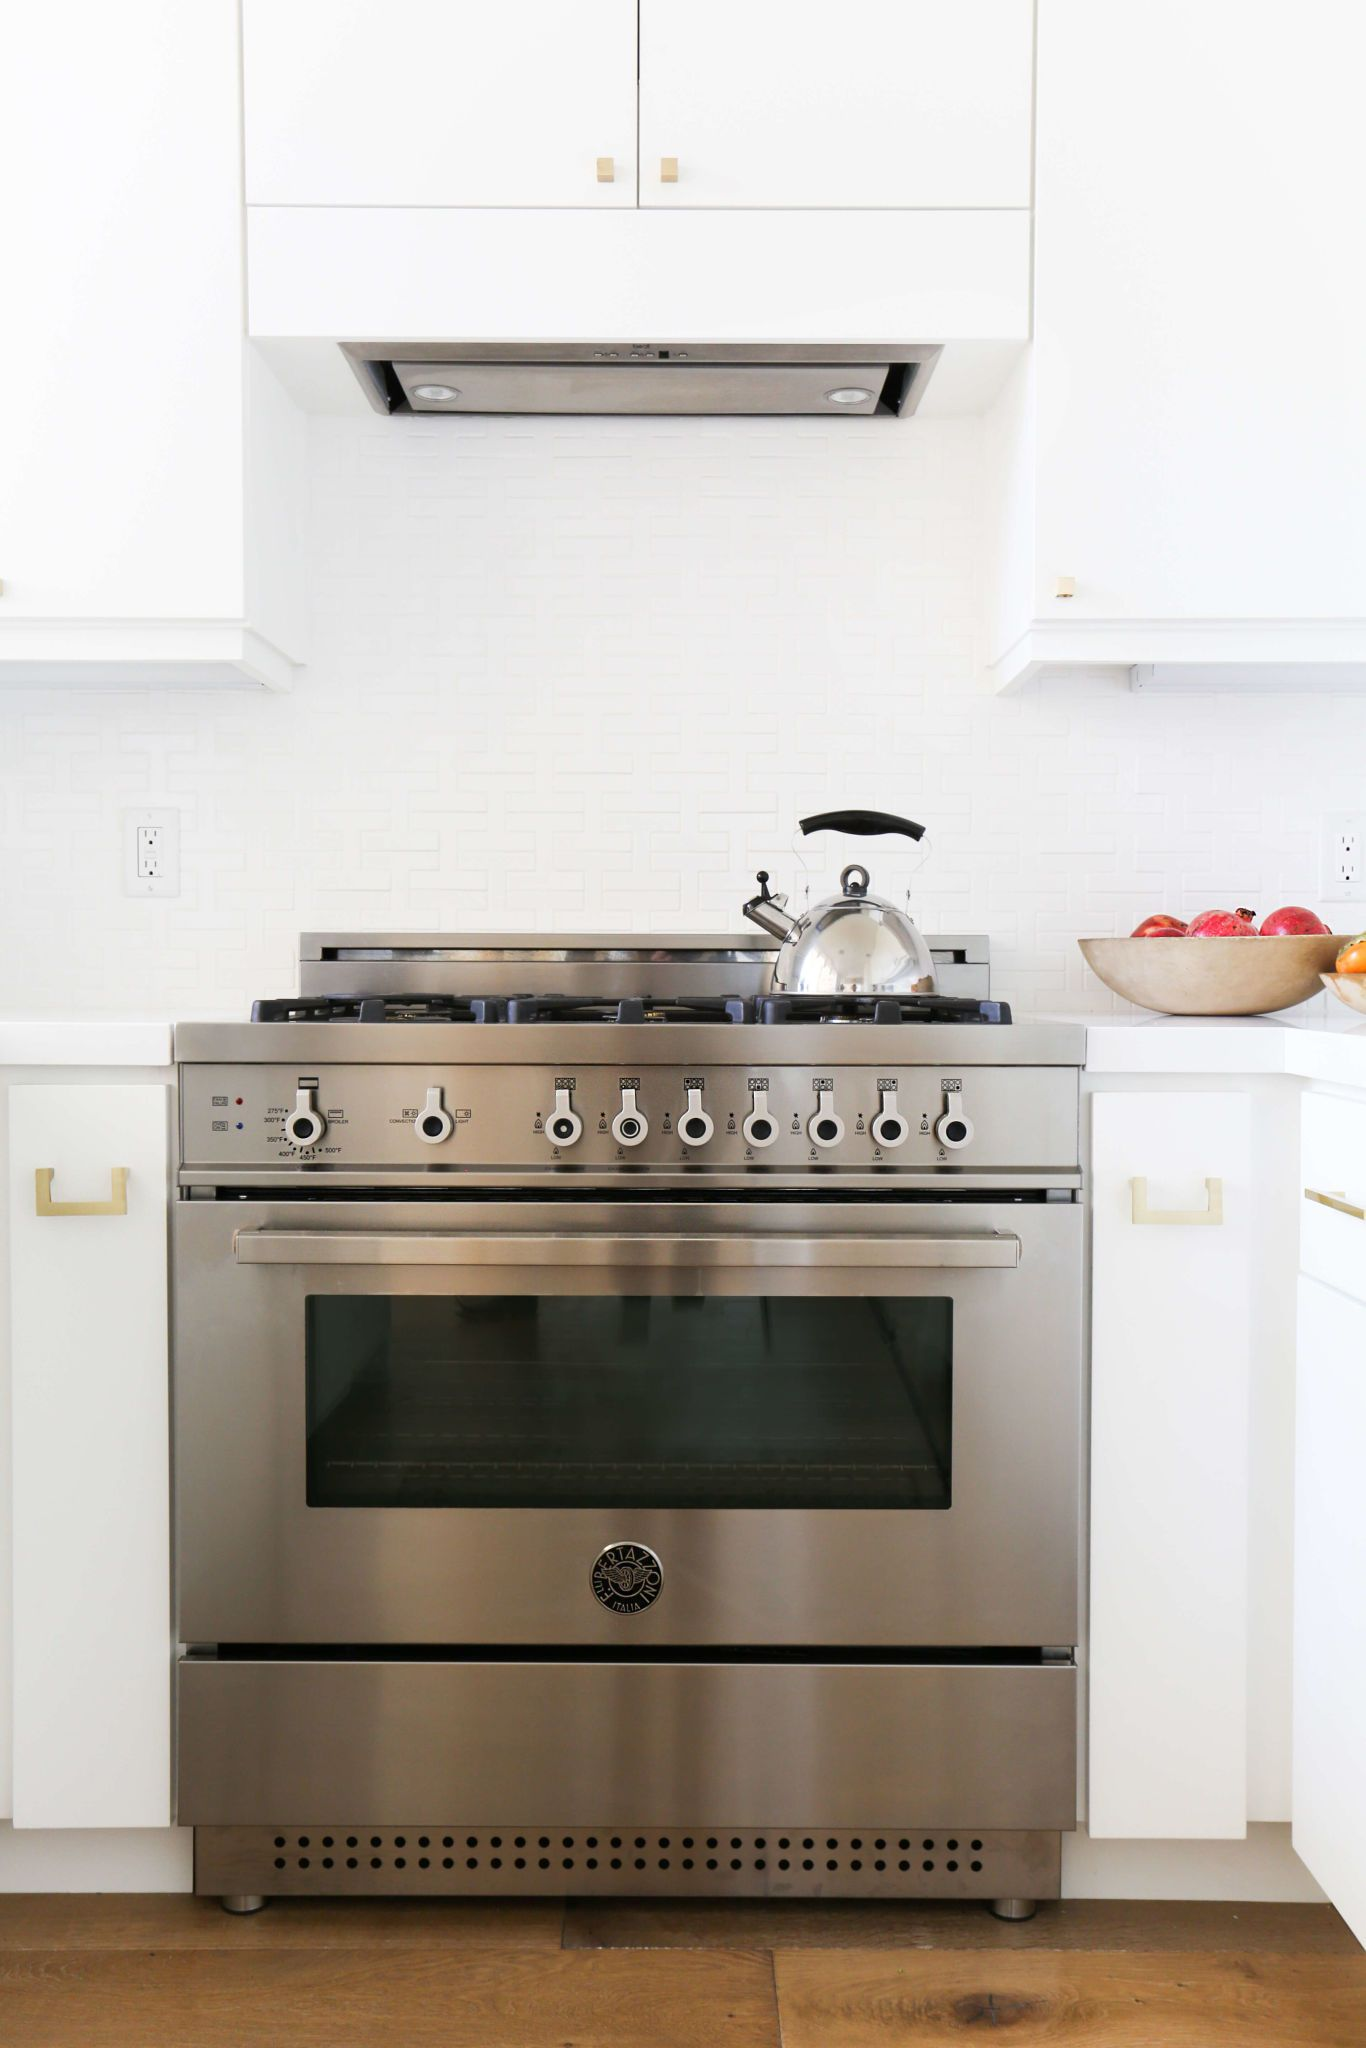 outside with stainless steel appliances hoods free and above island professional wall stove of vents insert vent gas electric hood performance inserts your smoke ventilation solutions zephyr high fan plus replacement ceiling kitchen stoves blower isl full fhballoon size range for exhaust